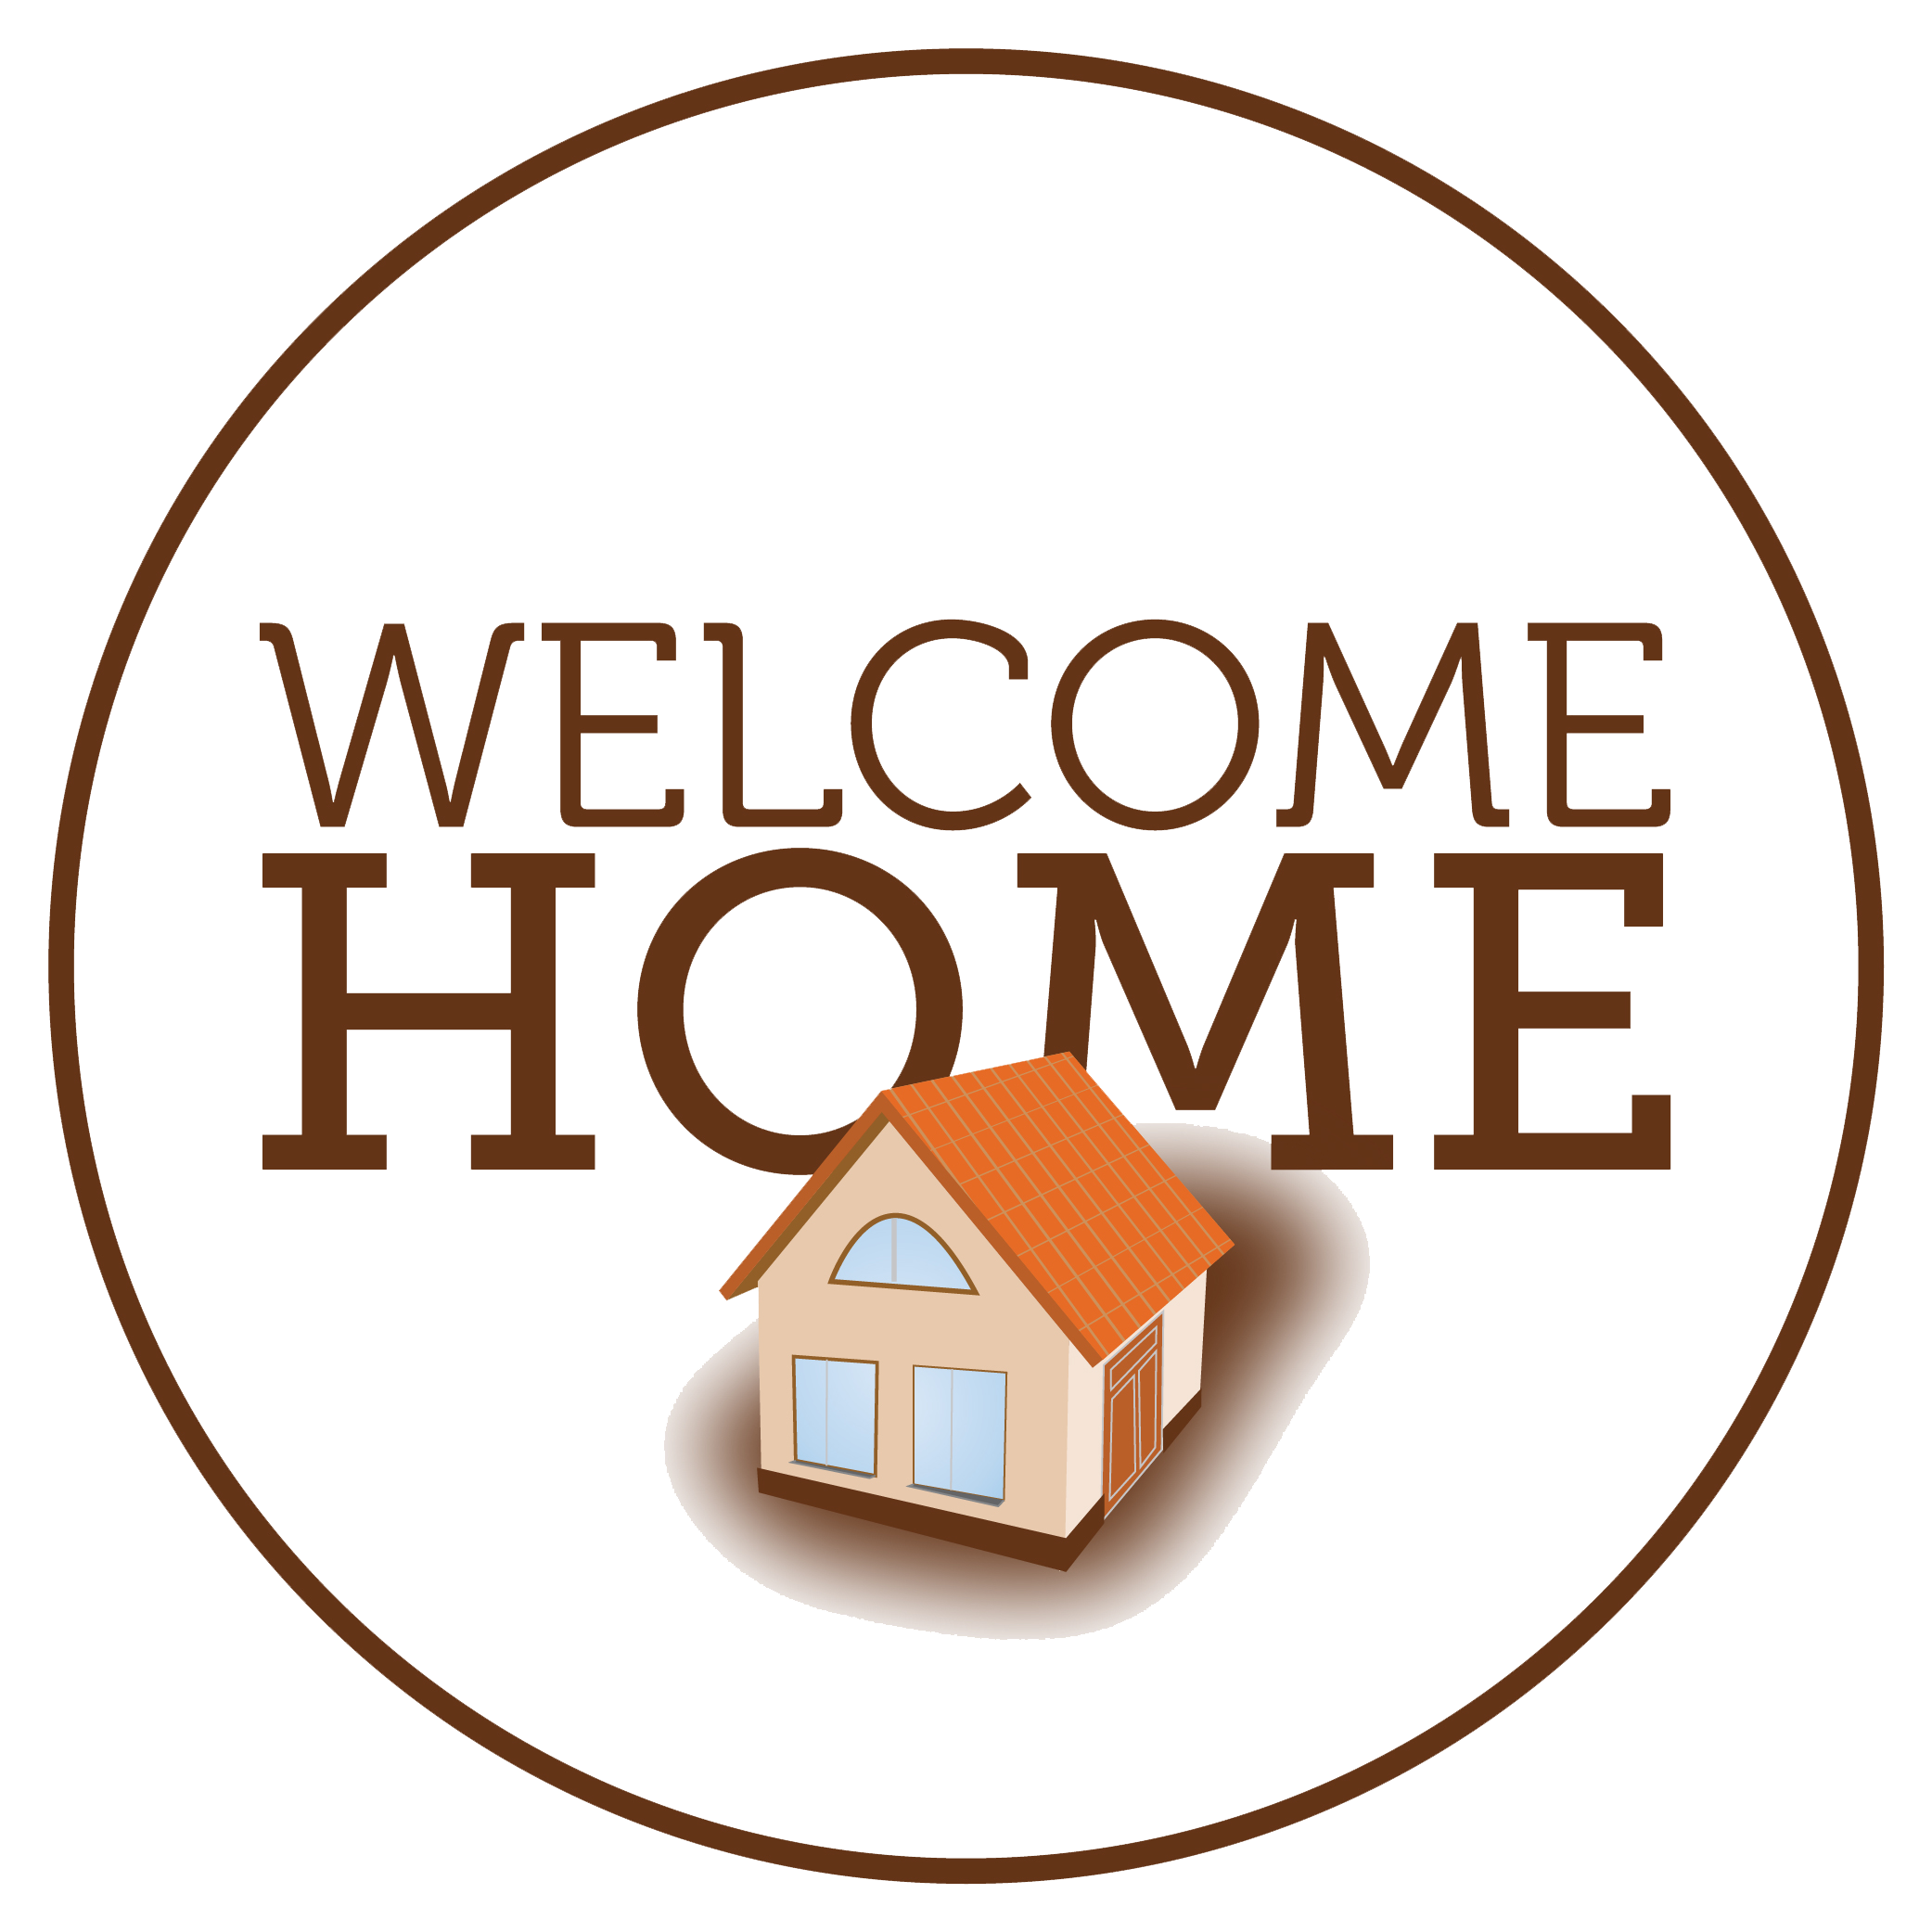 welcome home logo 7441